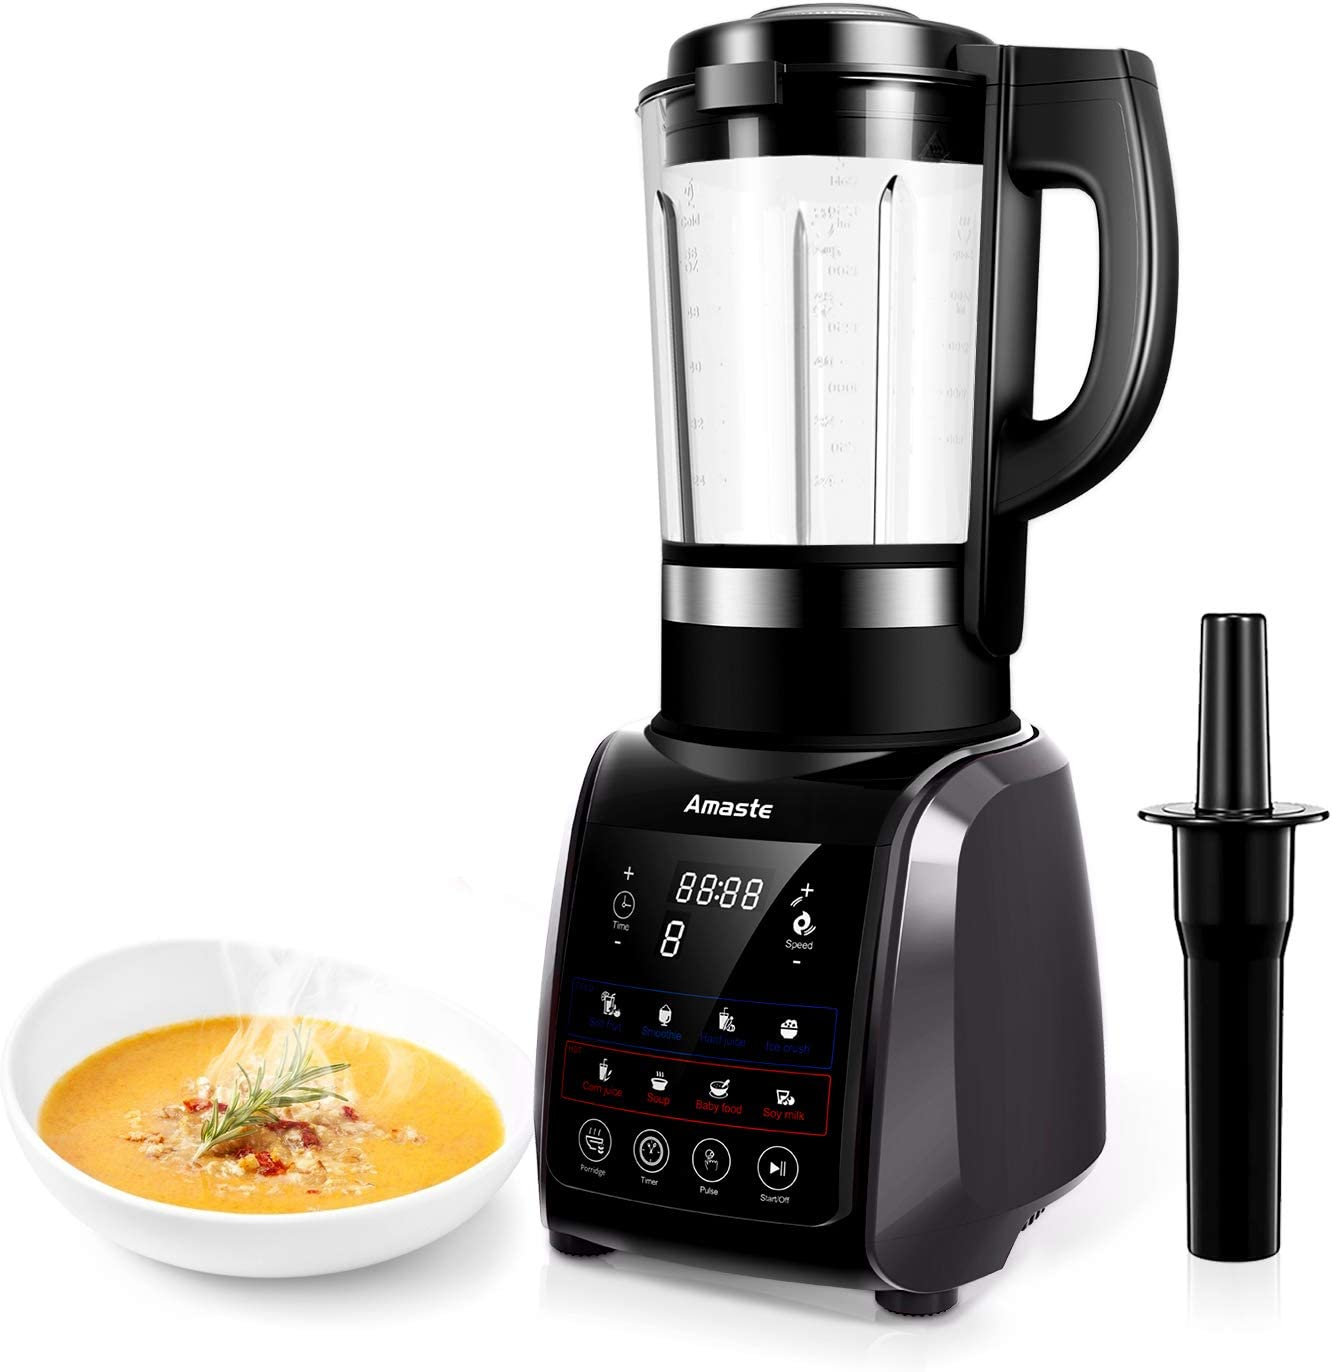 Amaste Blender, Professional High-Speed Countertop Blender with 1200W Base, 9 Pre-Programmed Settings, 64 oz Glass Jar for Family Soup, Smoothies, Grind, Shakes, Built-in Cold & Heat Function & Pulse with Timer, MR-01 Gray